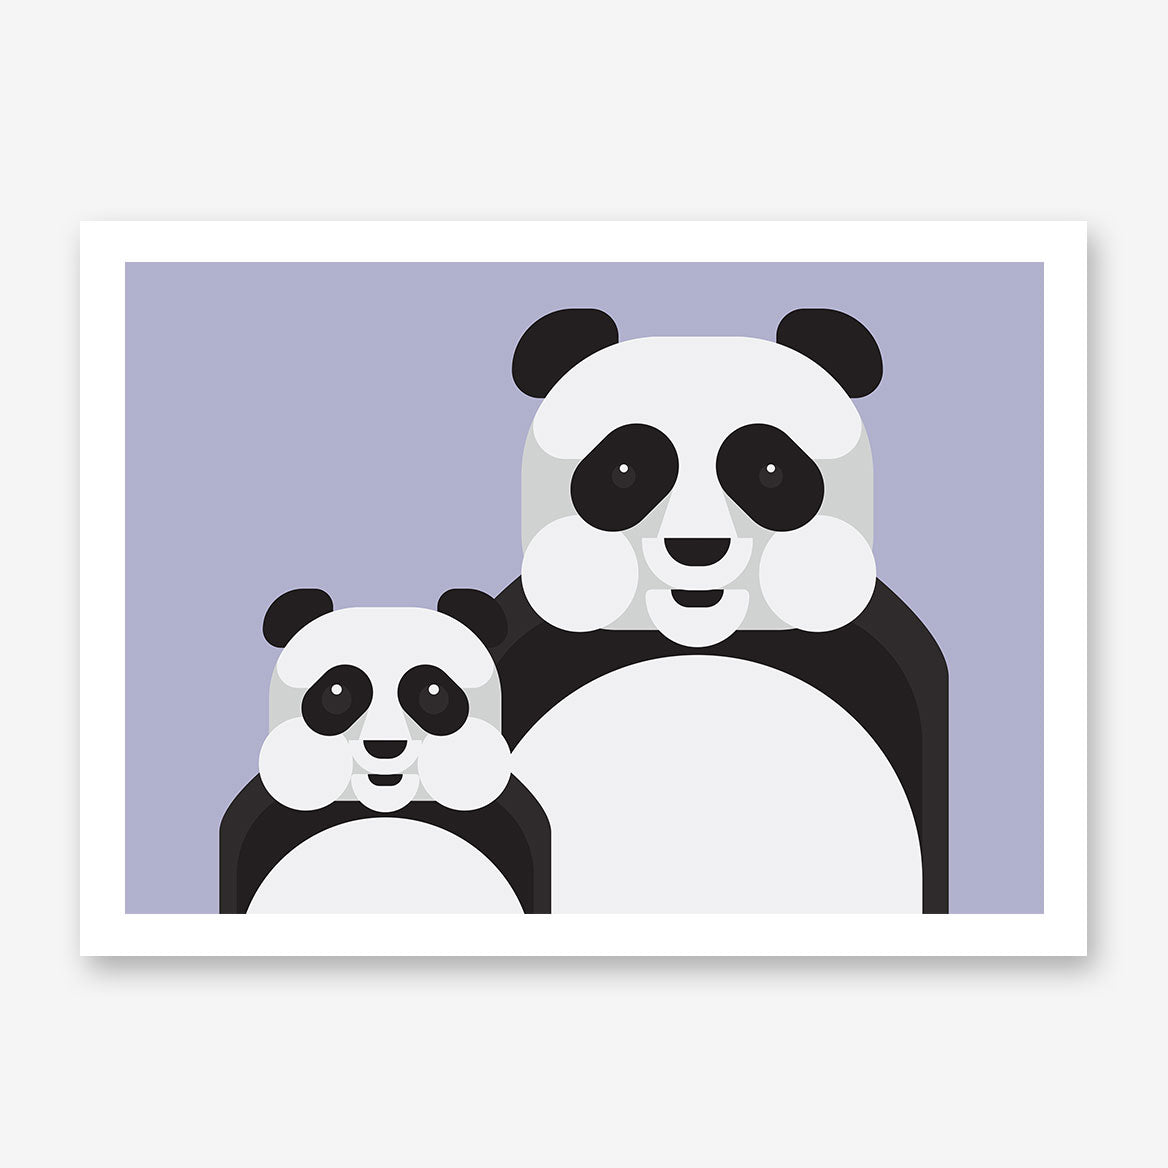 Geometric poster print with 2 pandas, on grey background.